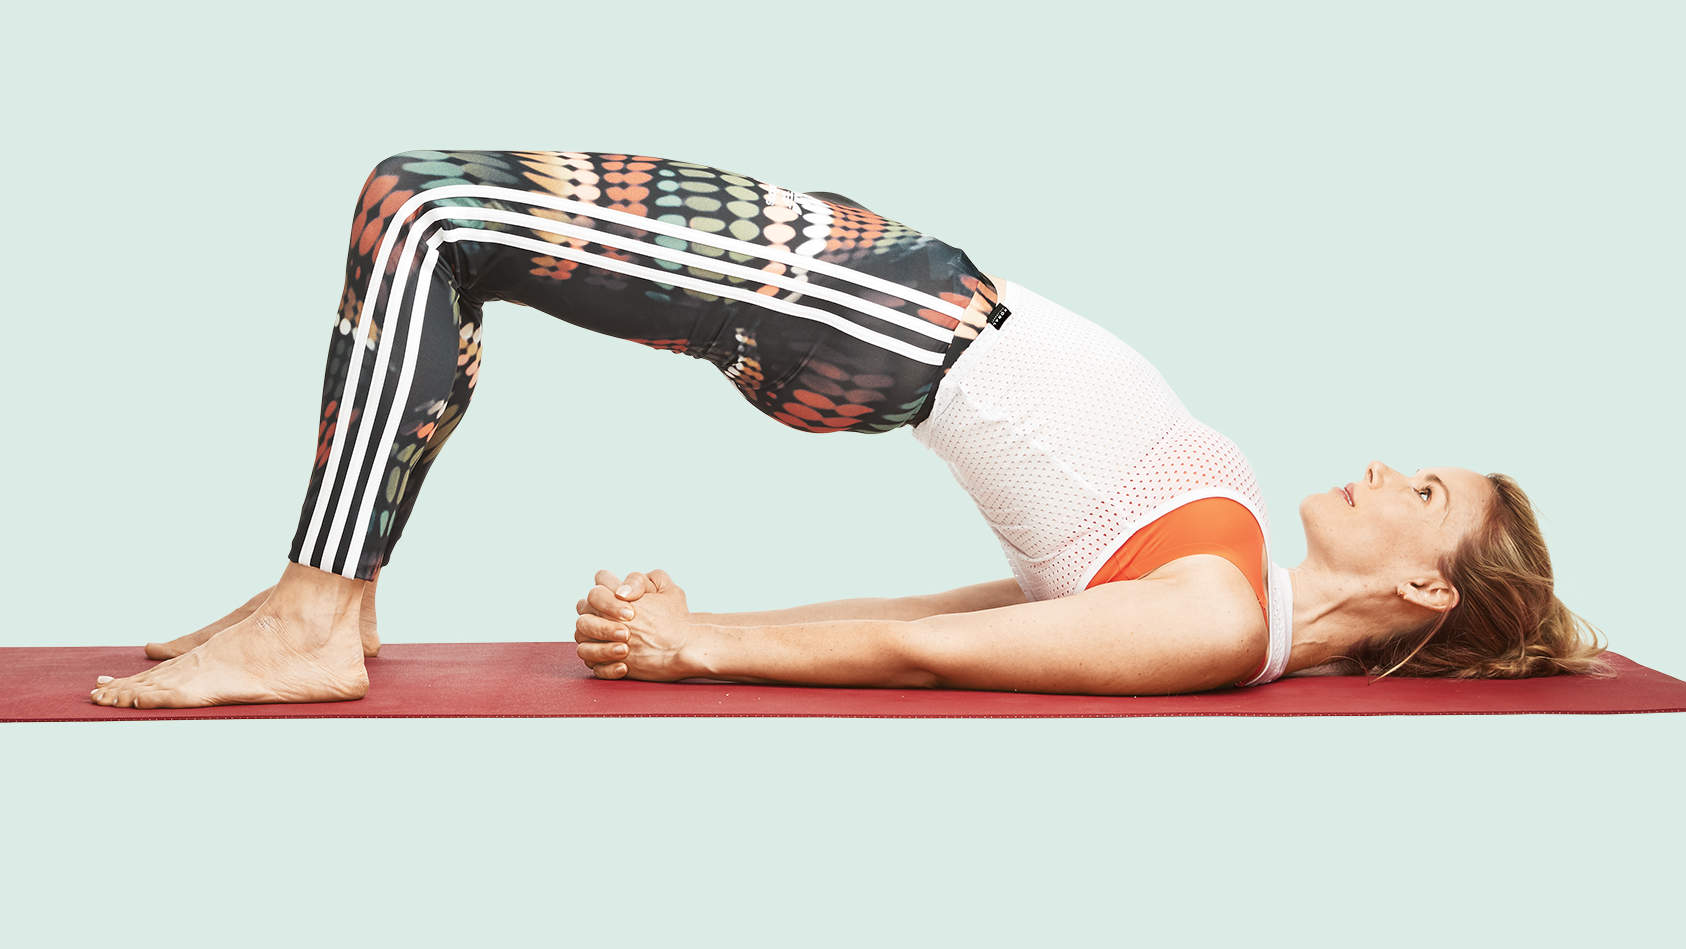 How can you build up arm strength for yoga? 8